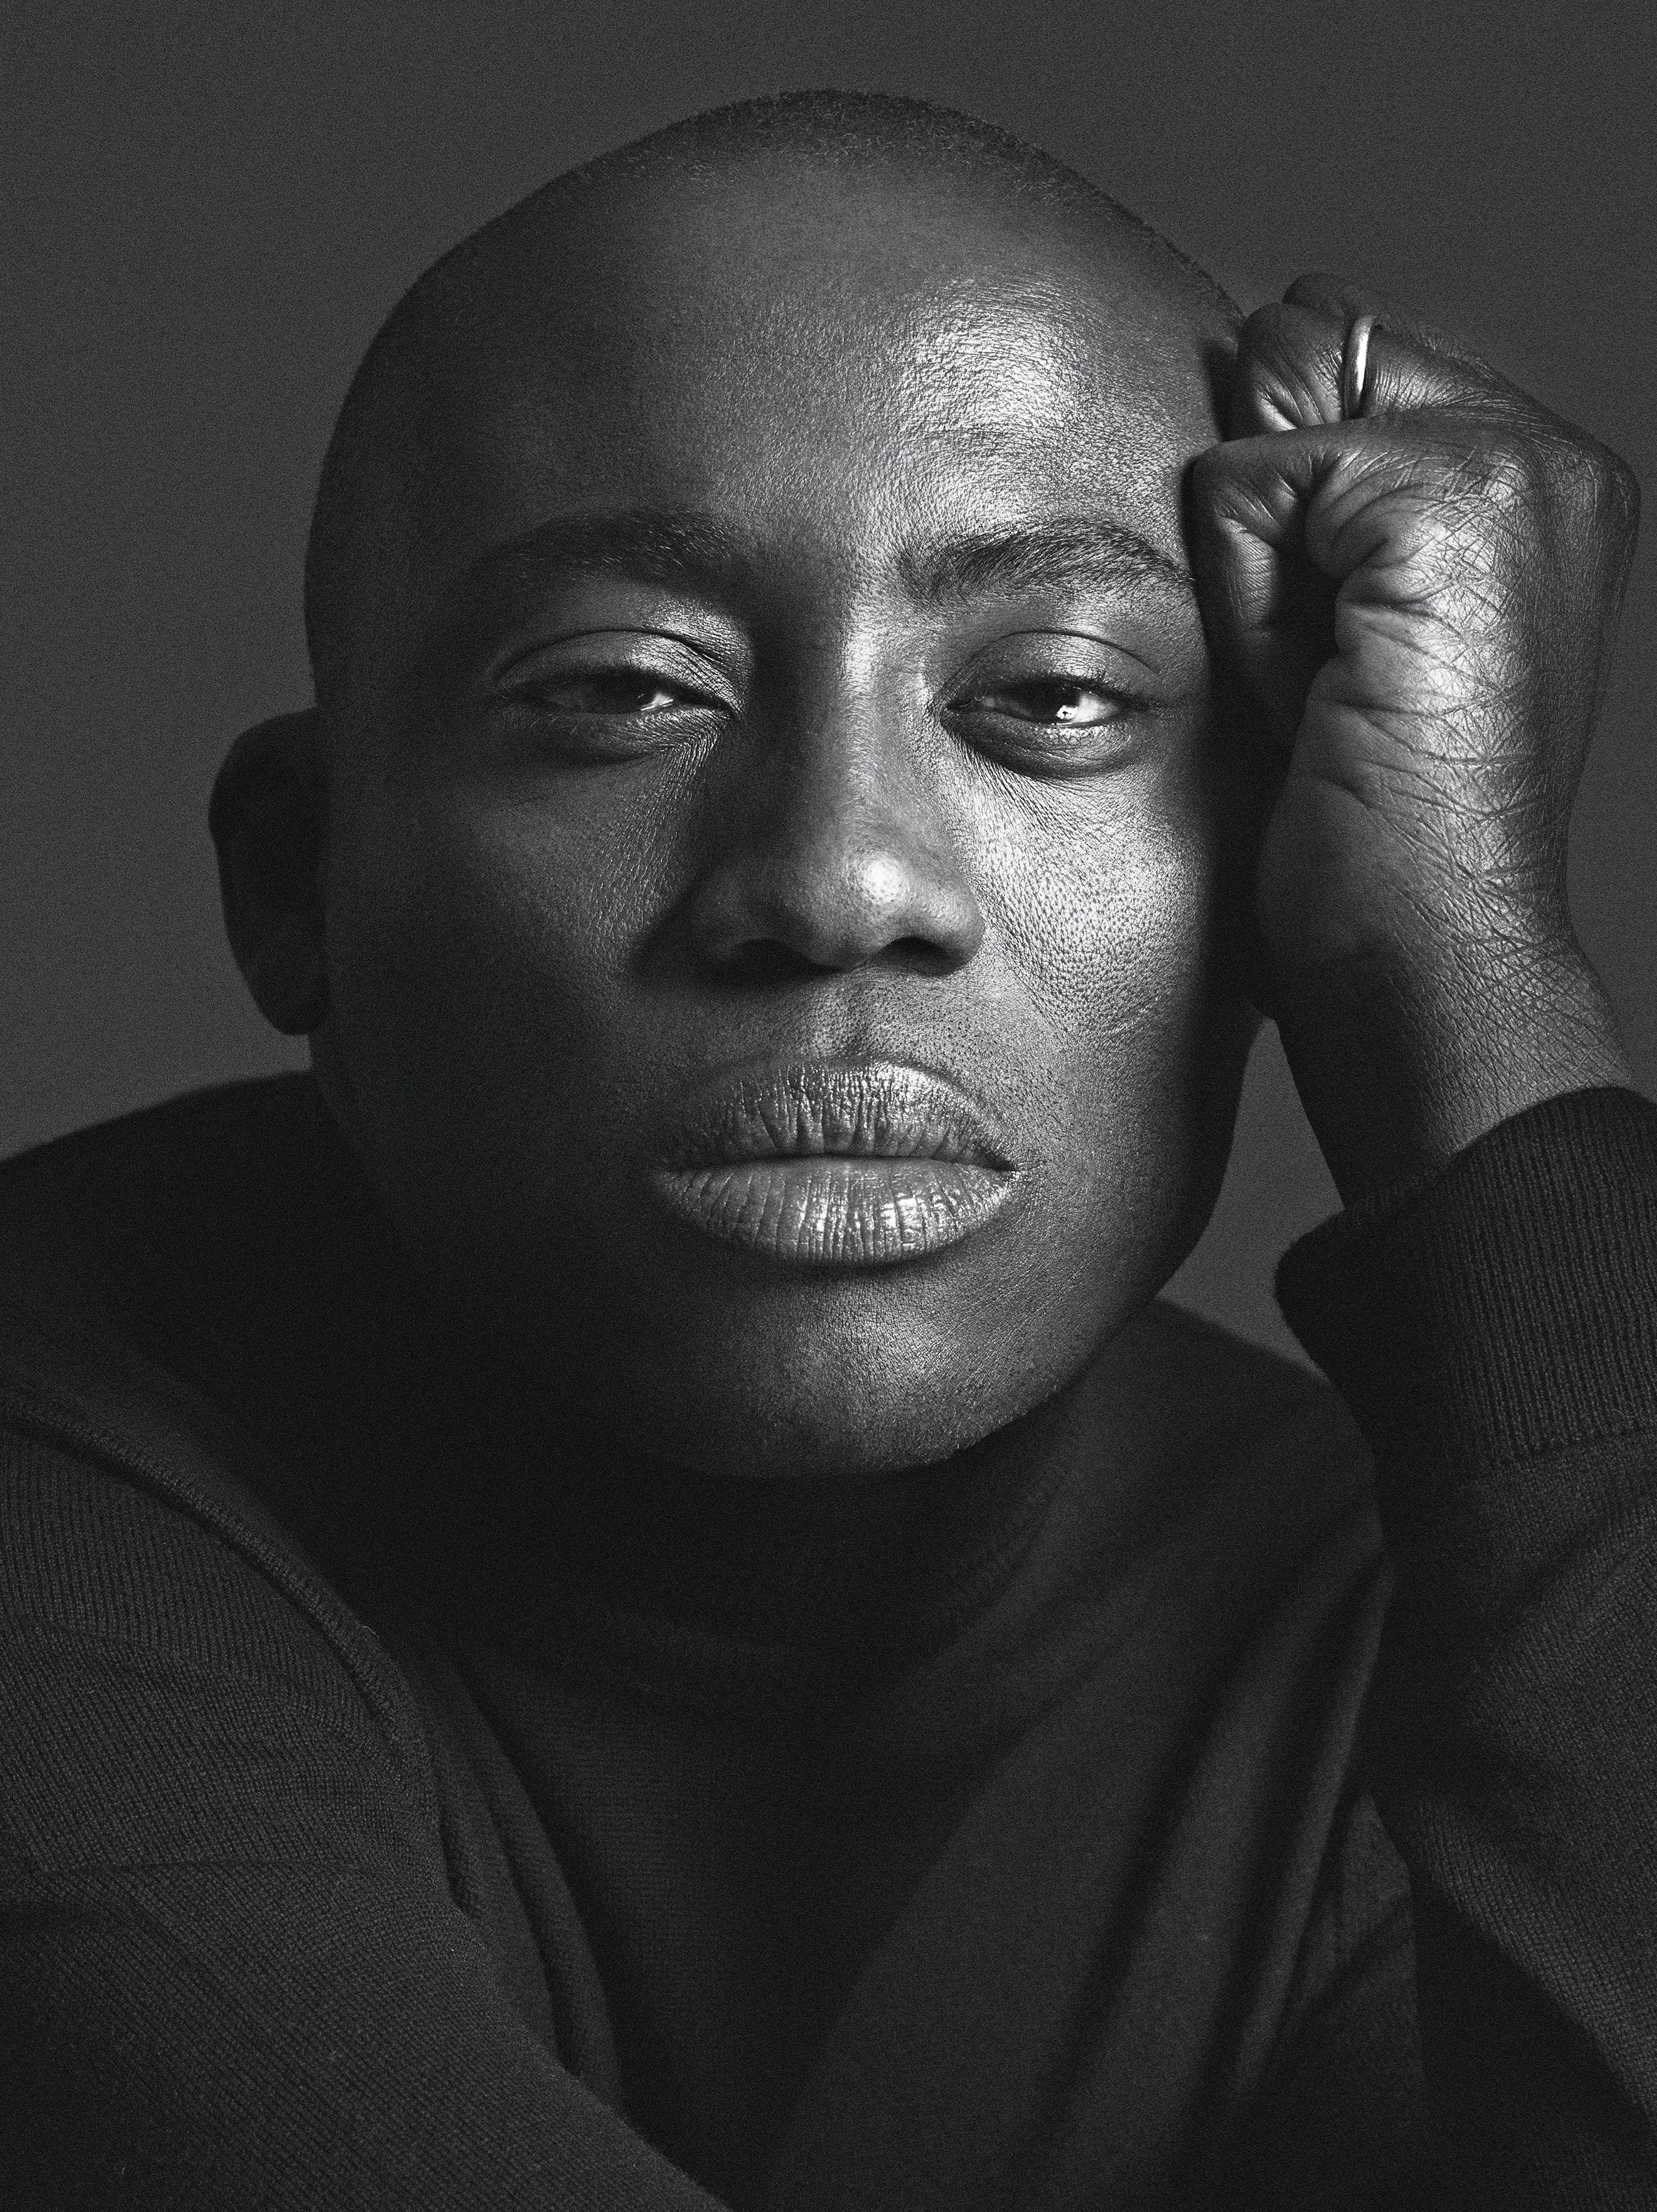 Edward Enninful | Photo by Mert & Marcus, source: Courtesy